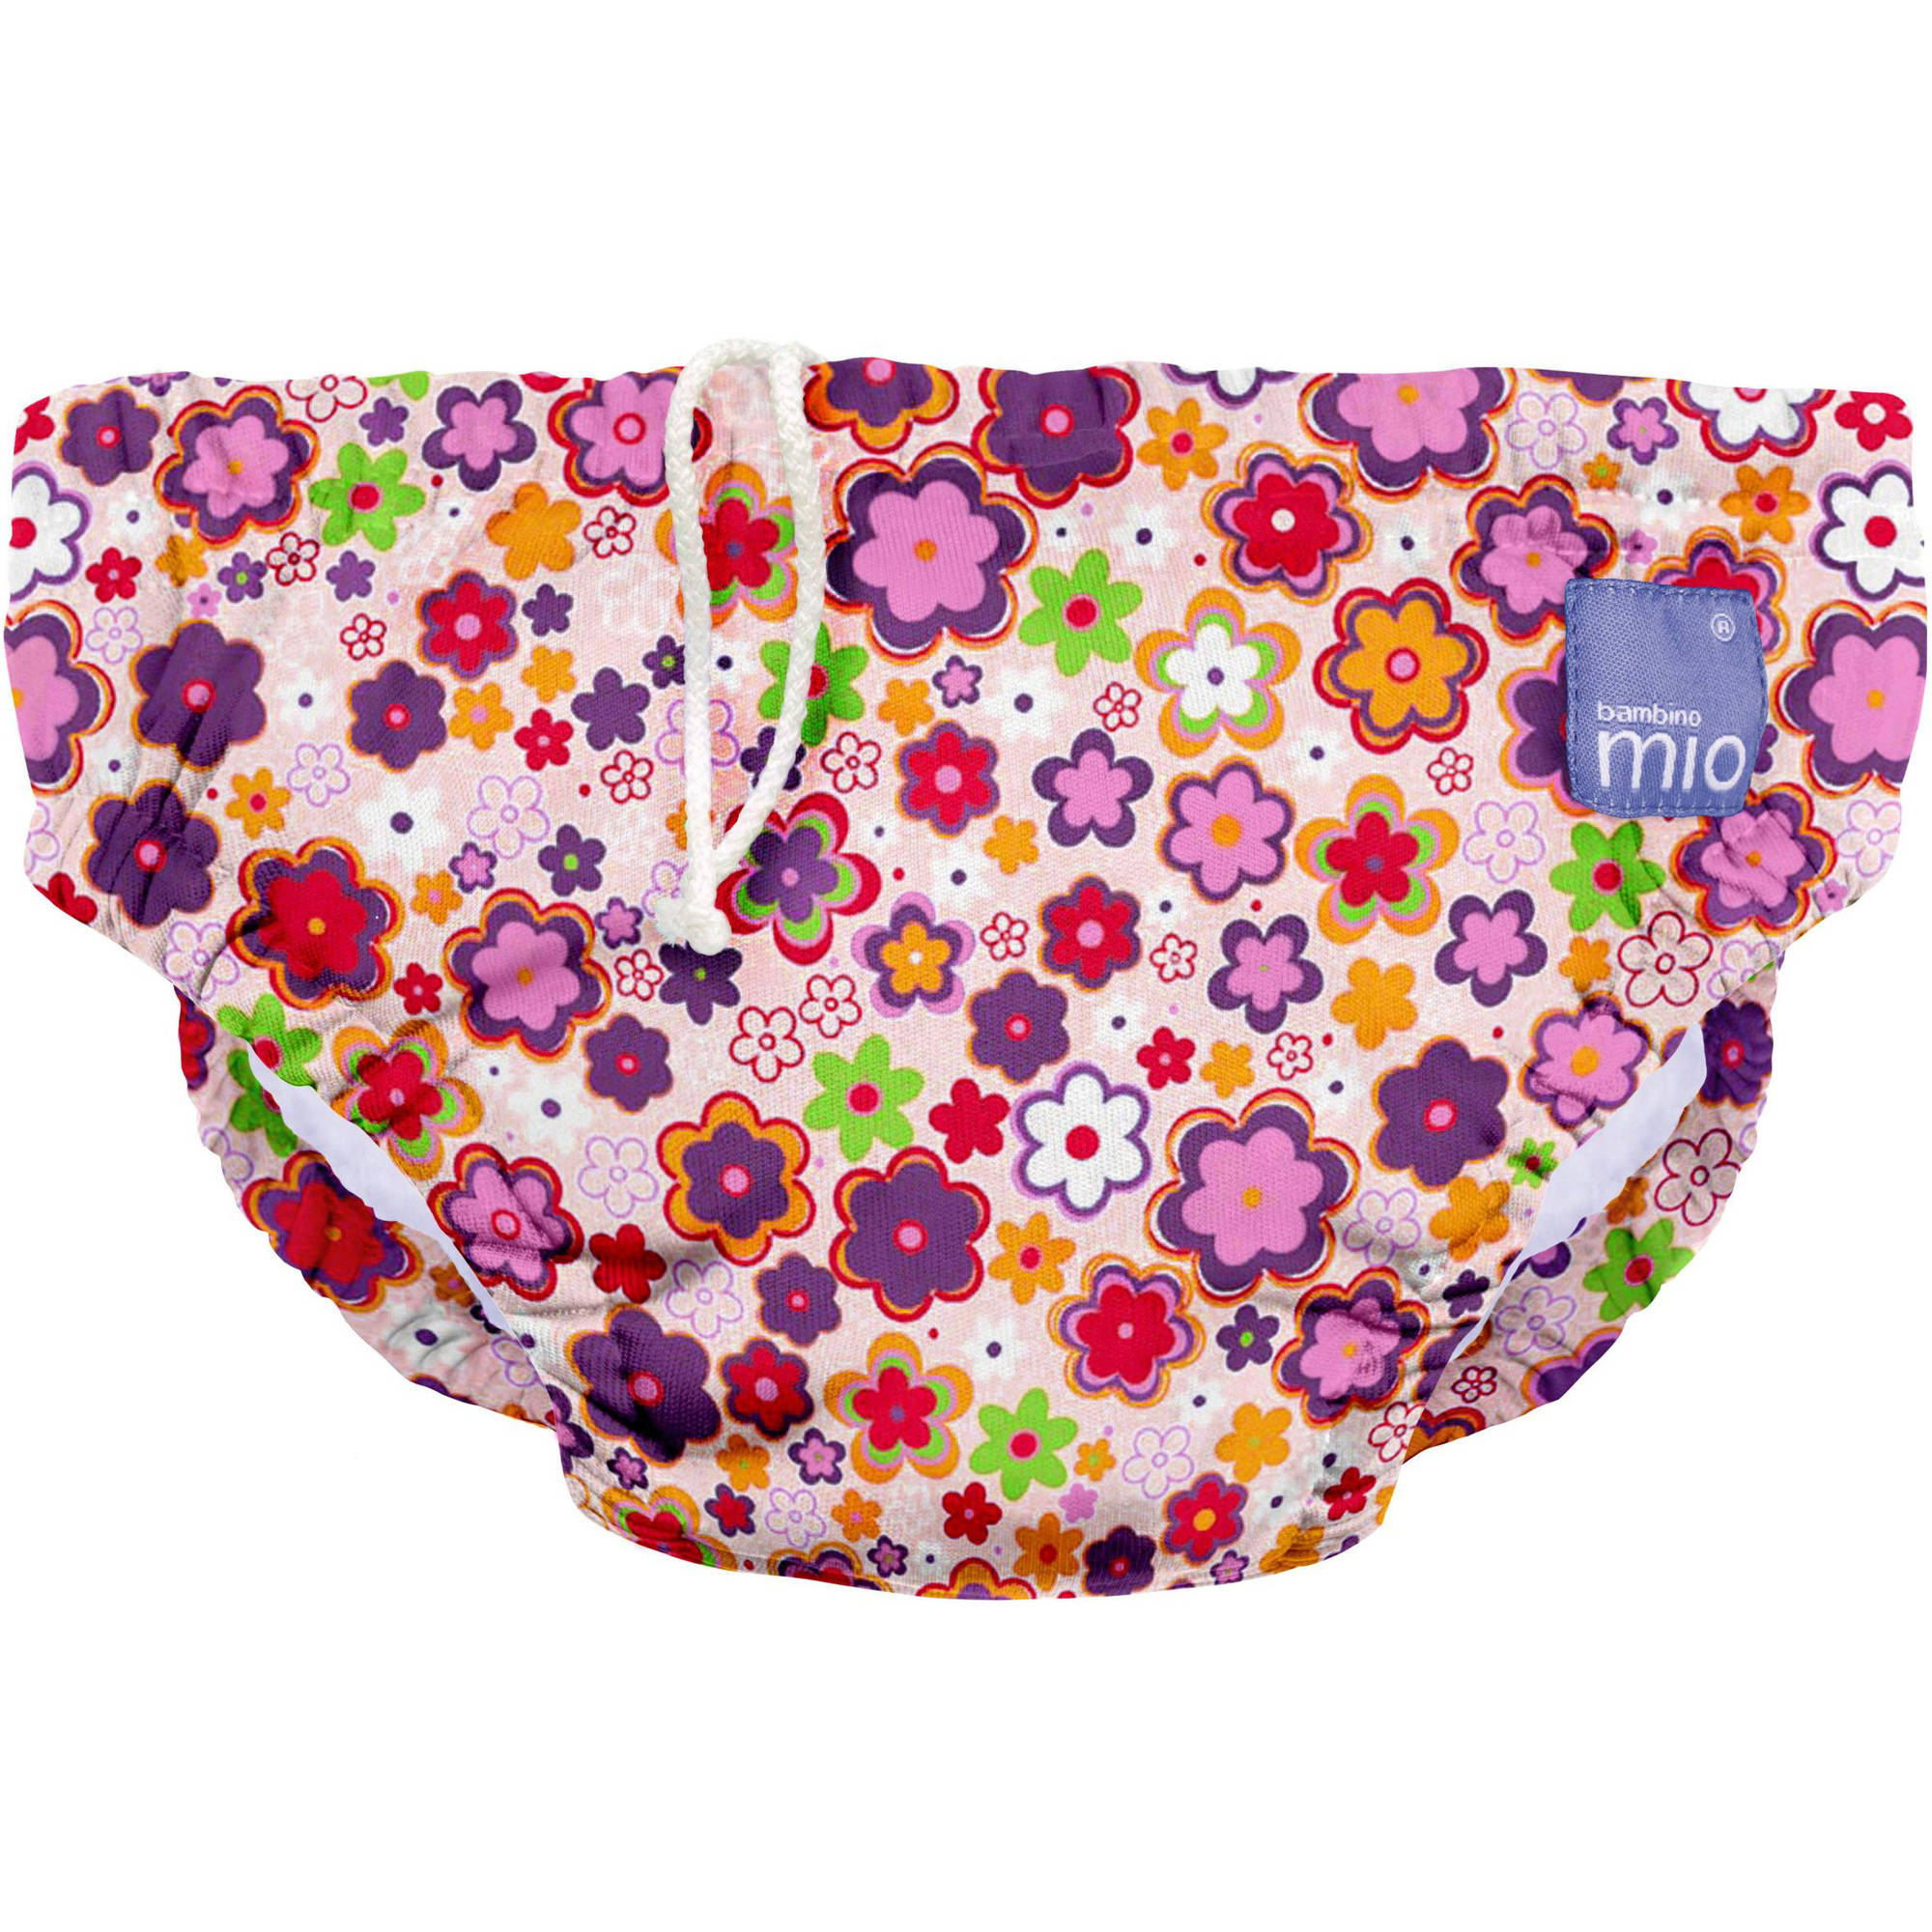 Bambino Mio Reusable Swim Diaper, Ditzy Floral, (Choose Your Size)